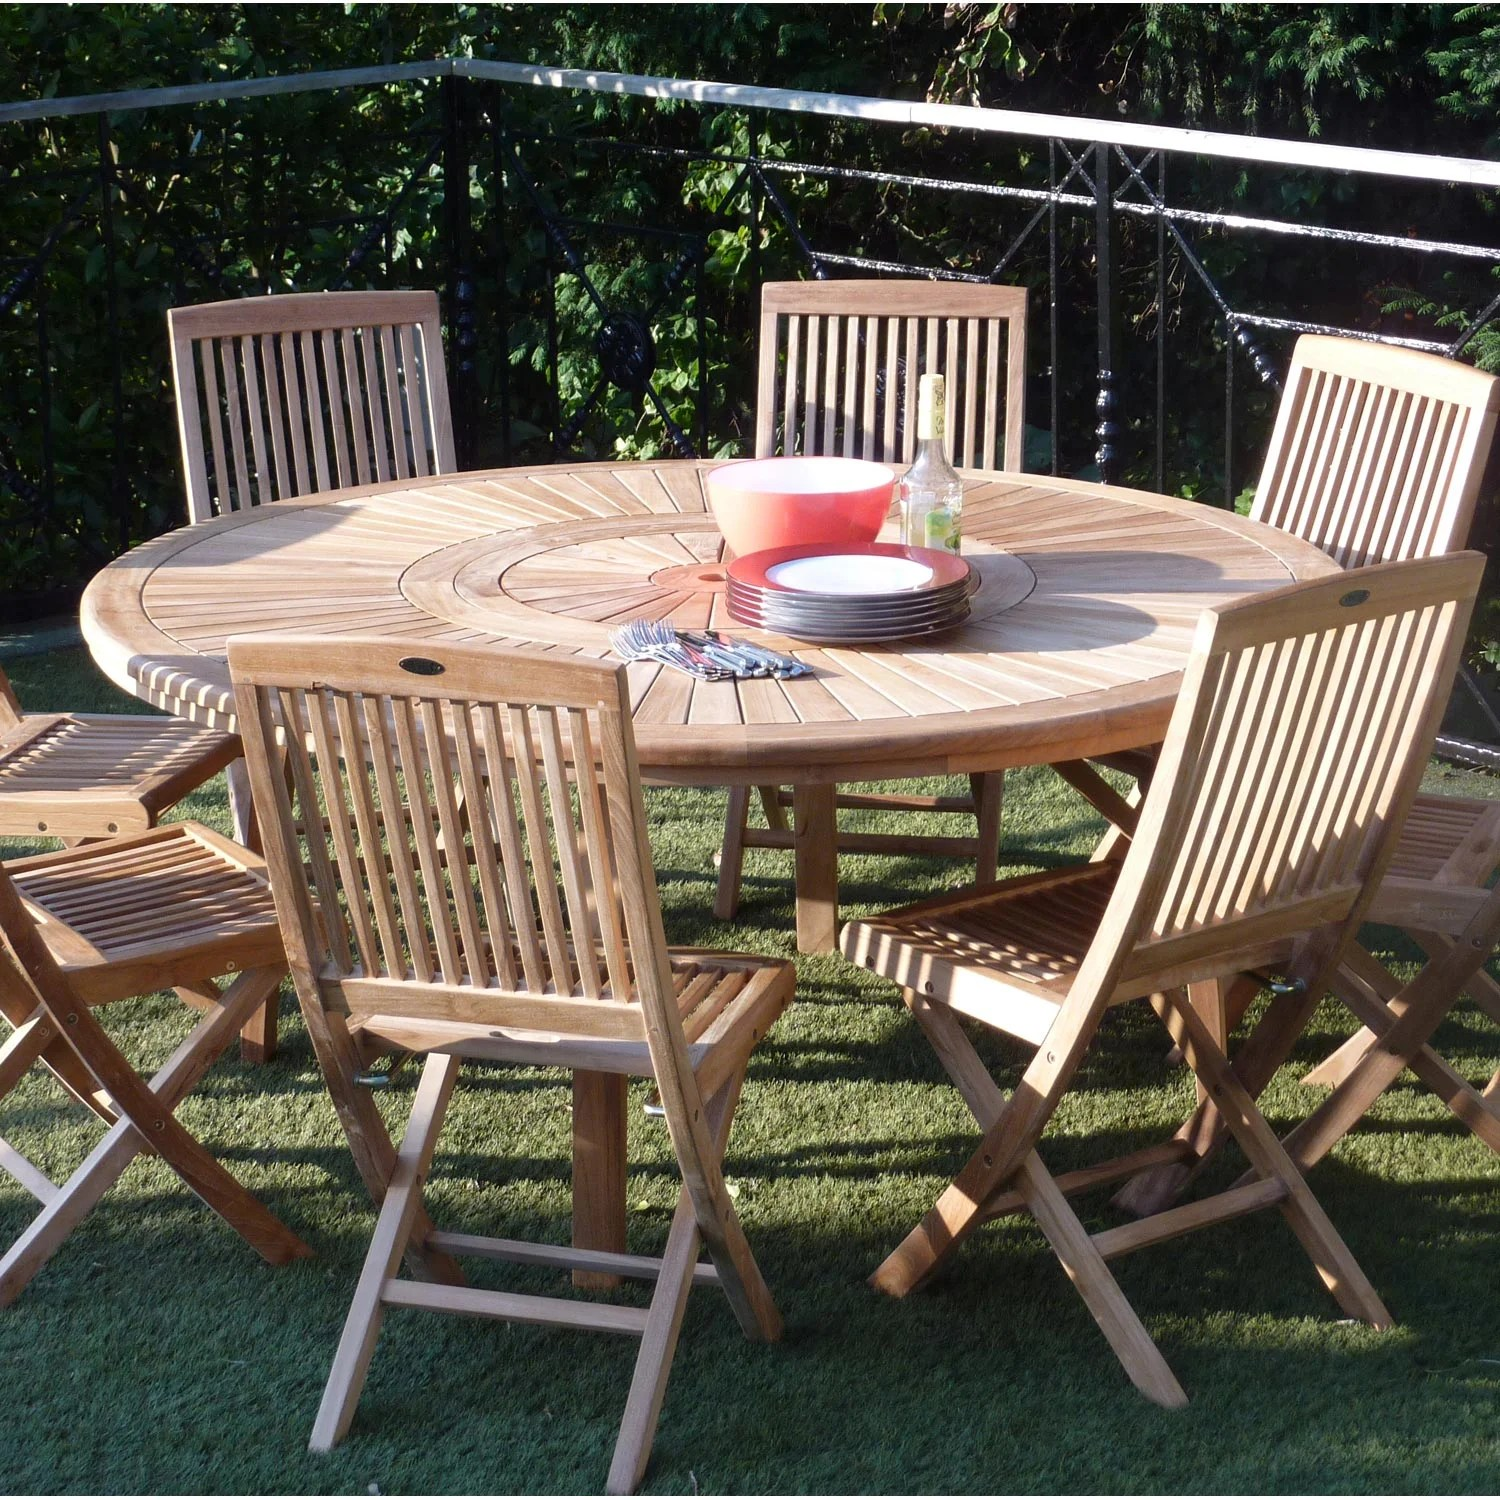 Salon Jardin 8 Personnes Salon De Jardin Orion Naturel 8 Personnes Leroy Merlin